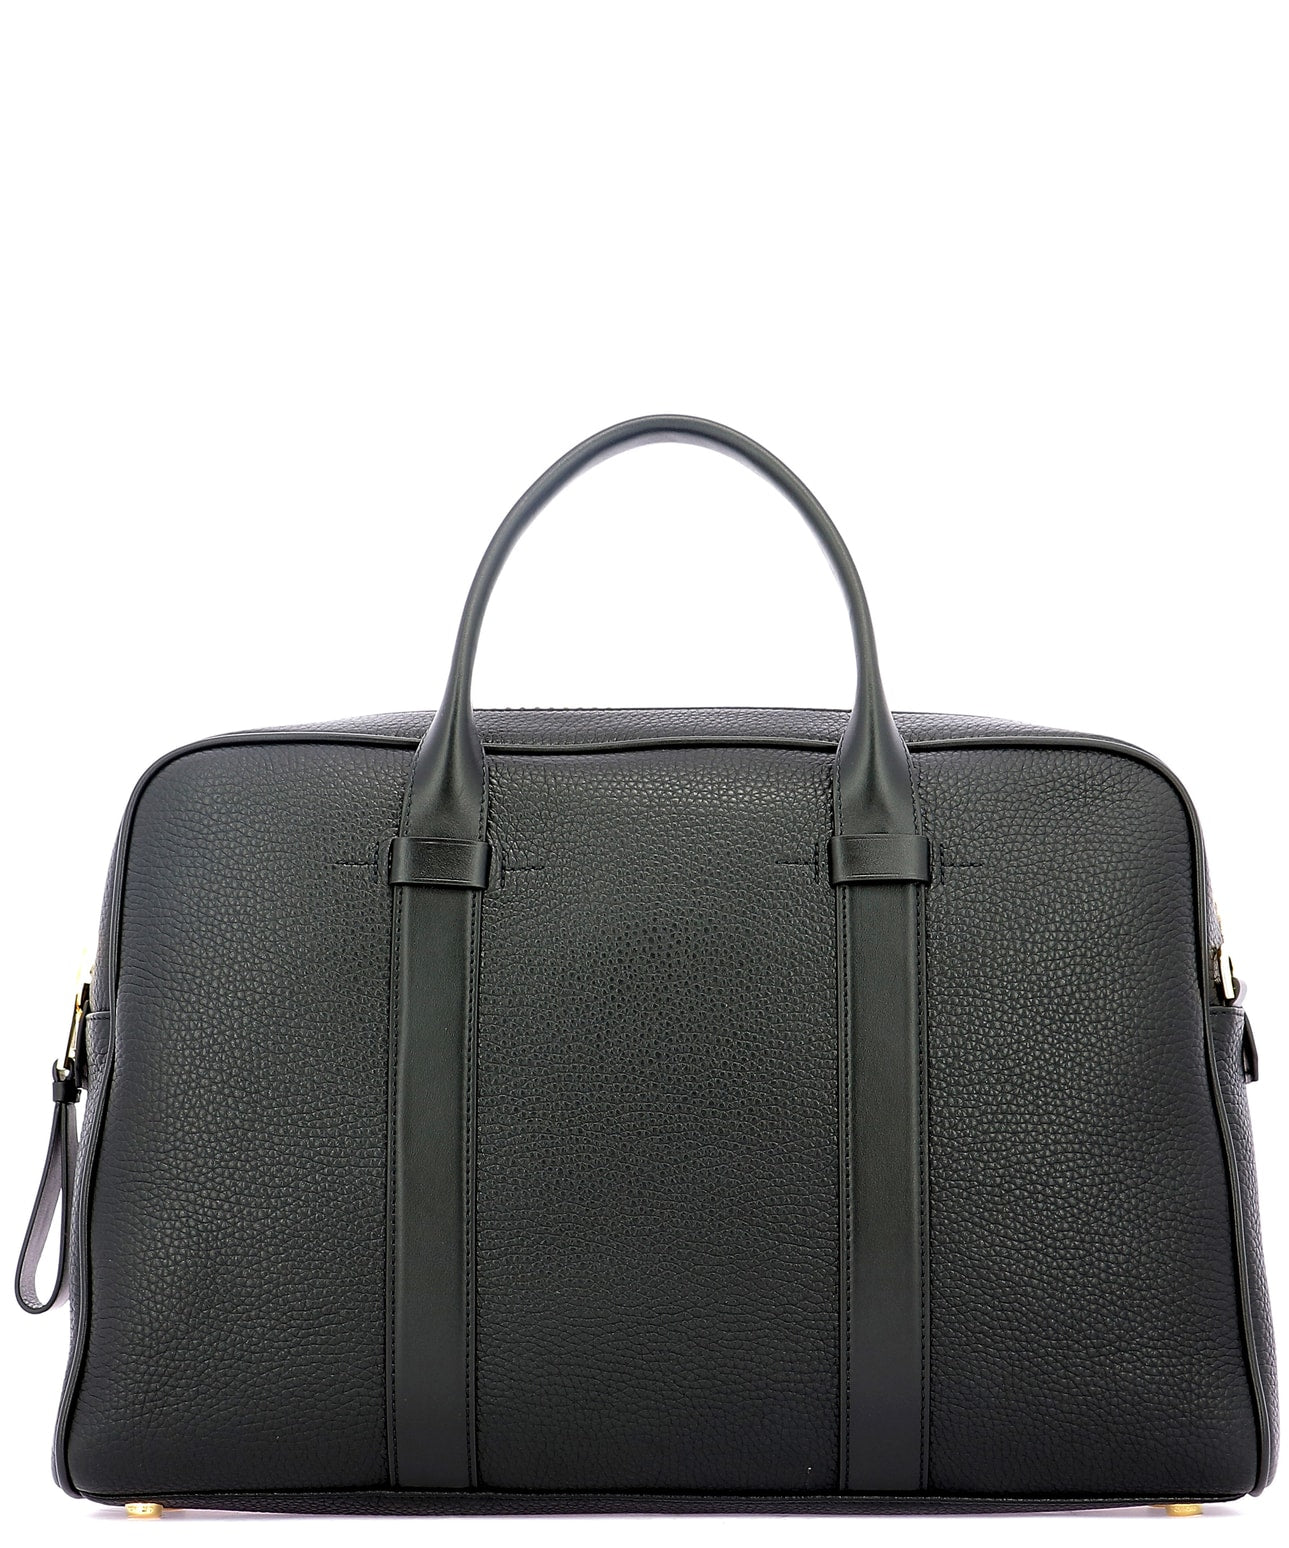 Tom Ford Bags TOM FORD HOLD